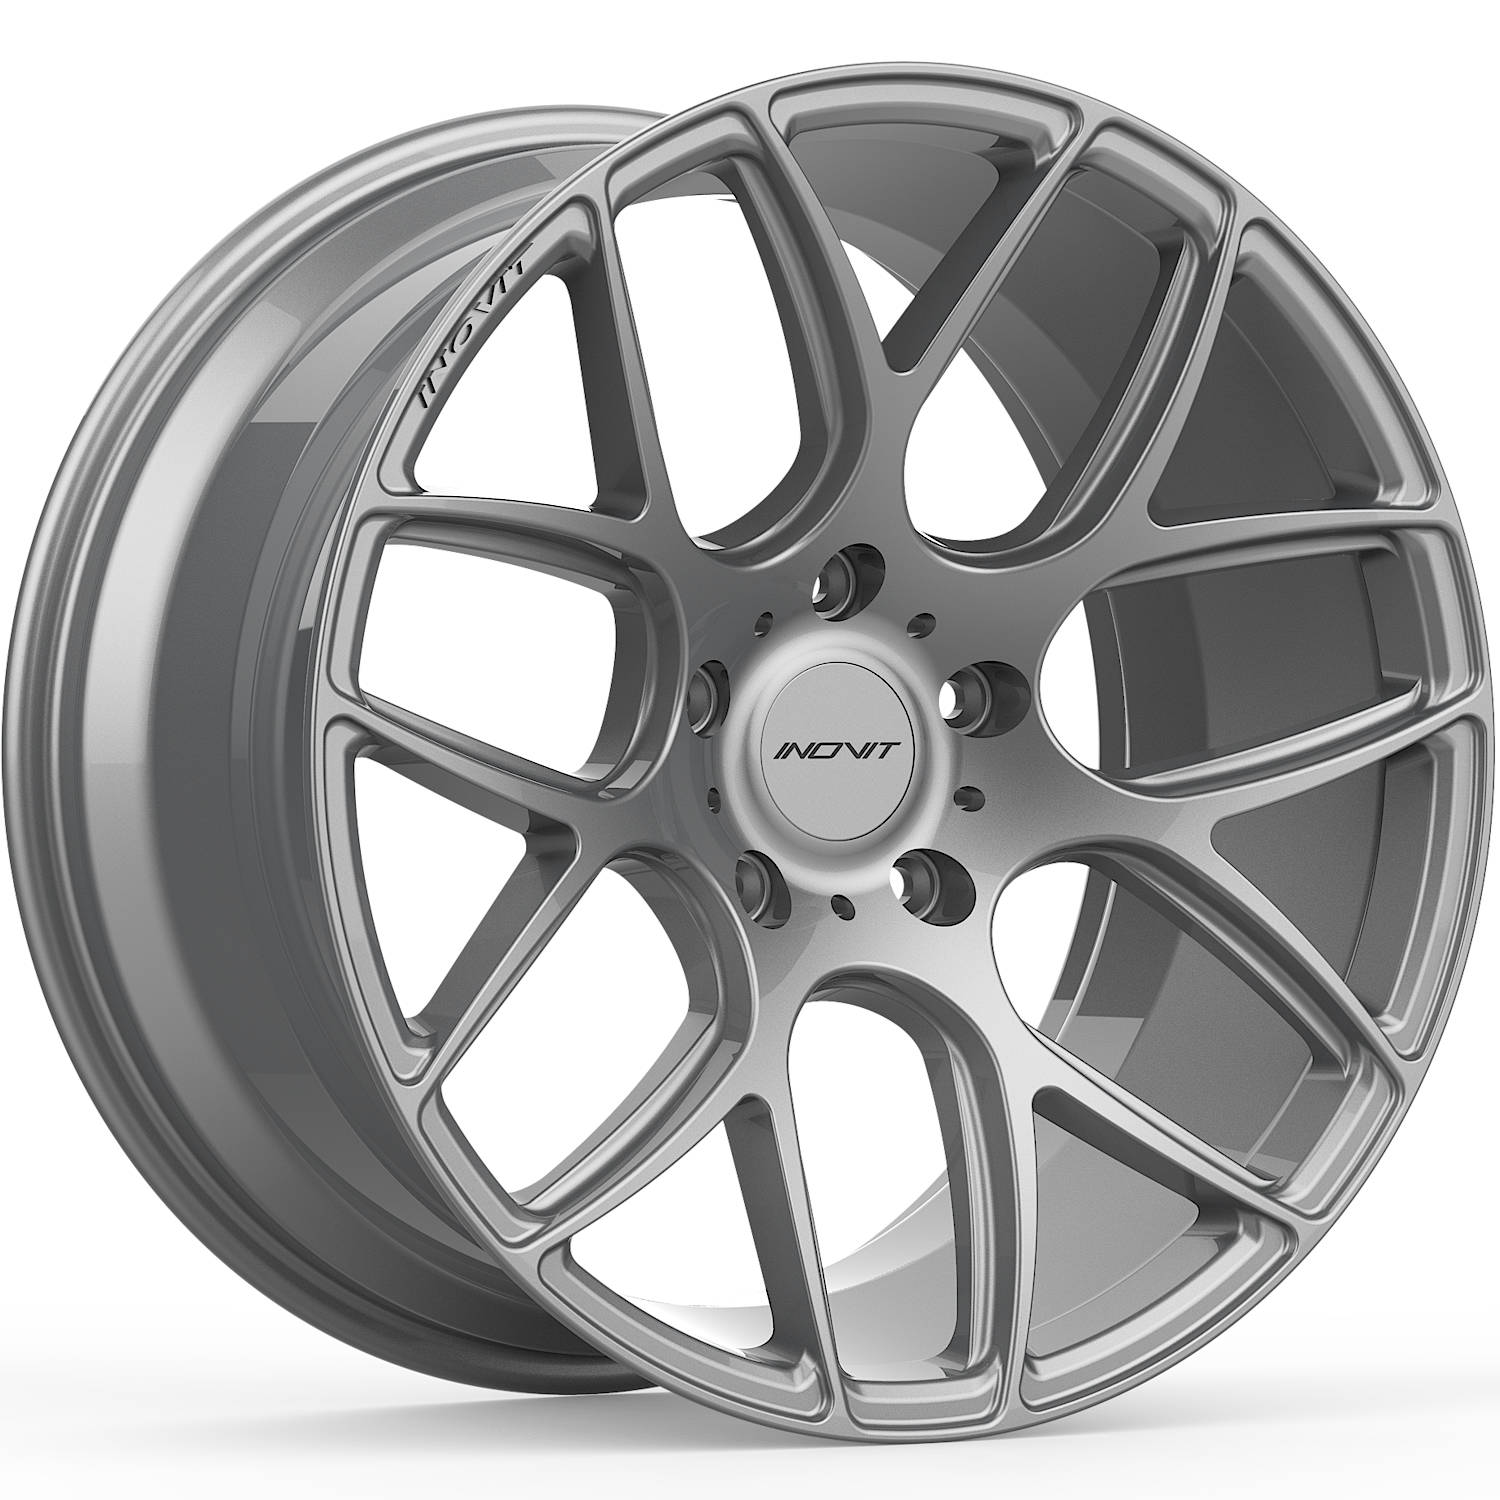 INOVIT Thrust Silver20x10 +38mm